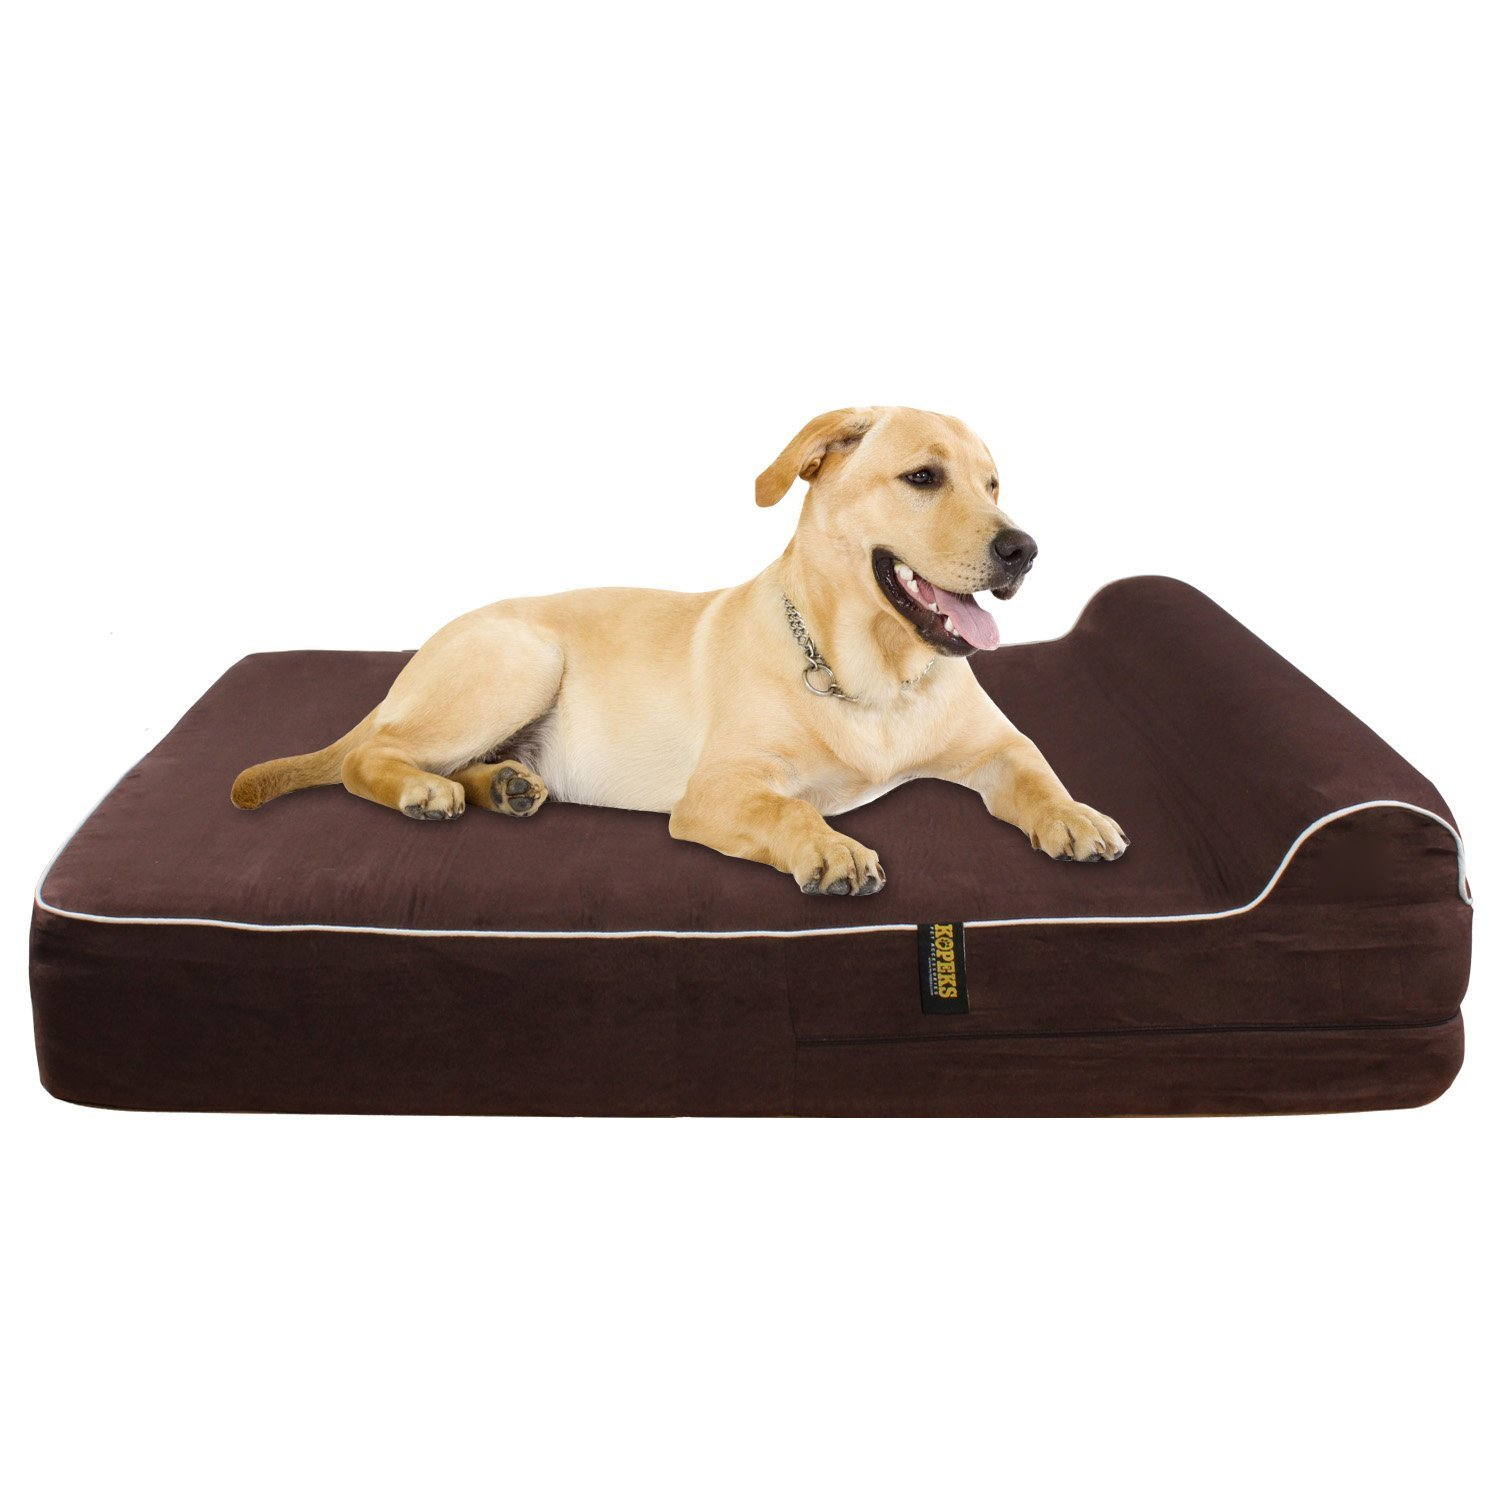 Extra Large 7'' Thick Orthopedic Memory Foam Dog Bed With 3'' Pillow - Includes Waterproof Inner Protector - Dark Chocolate Color XL